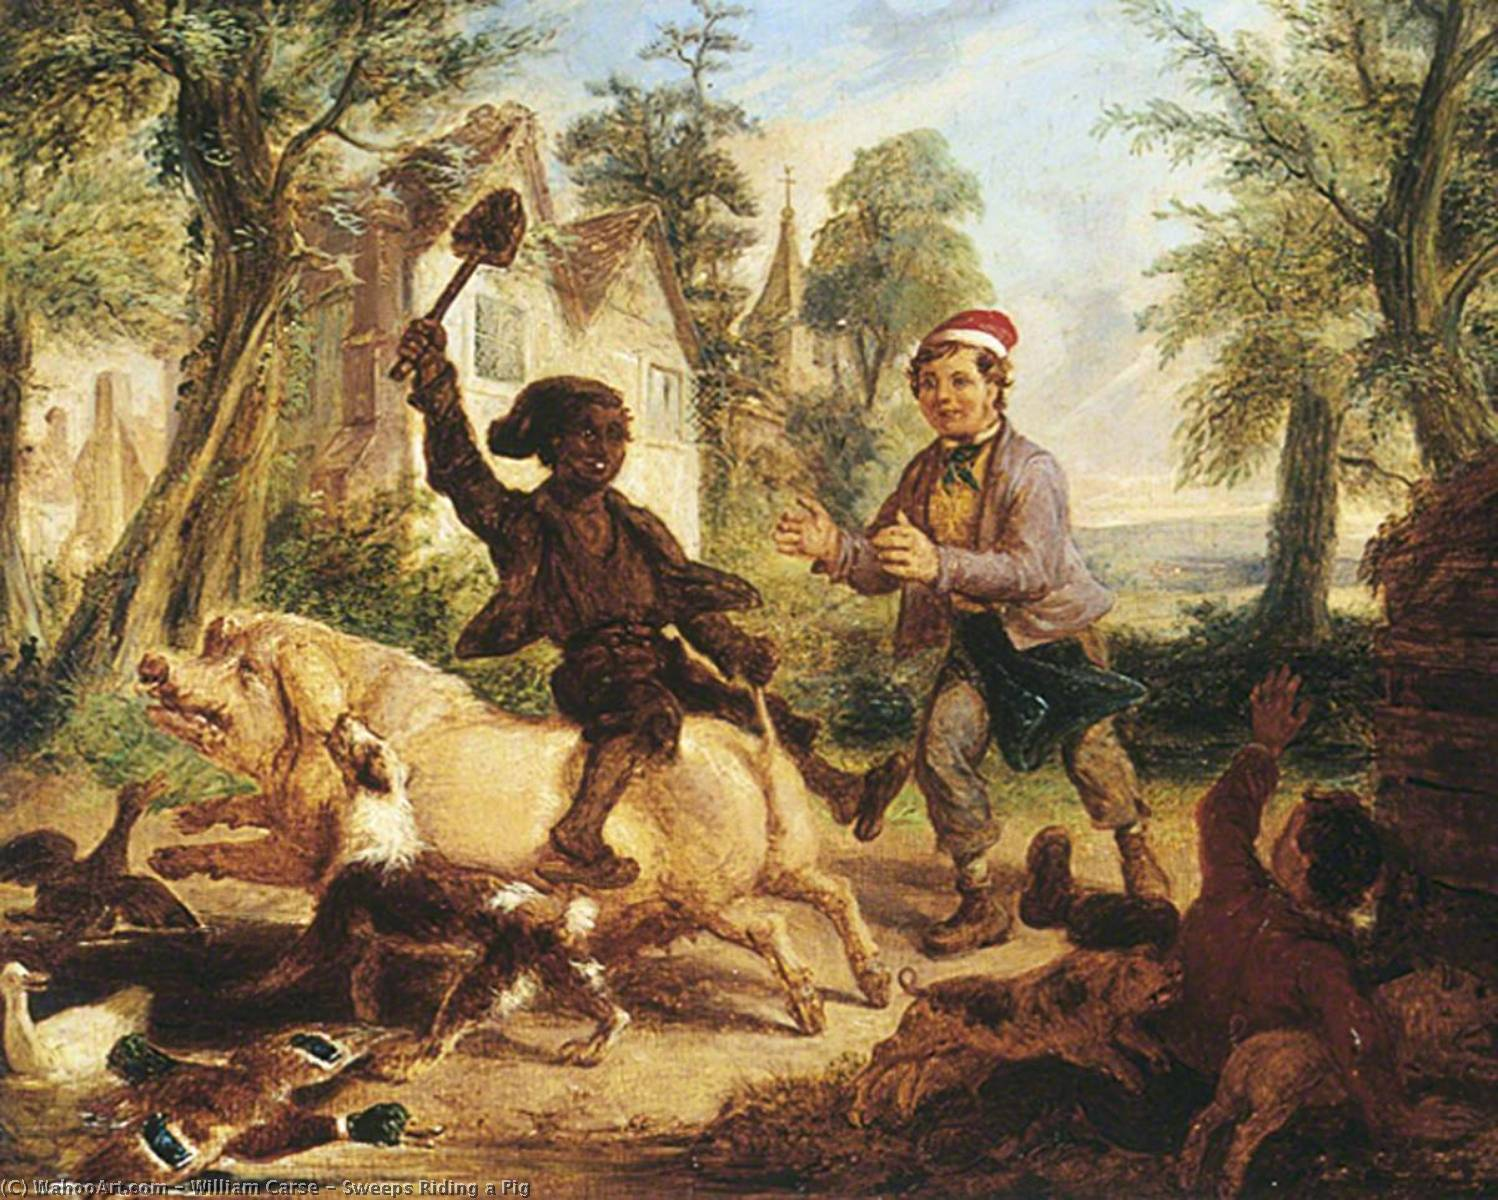 Sweeps Riding a Pig, Oil by William Carse (1800-1845)